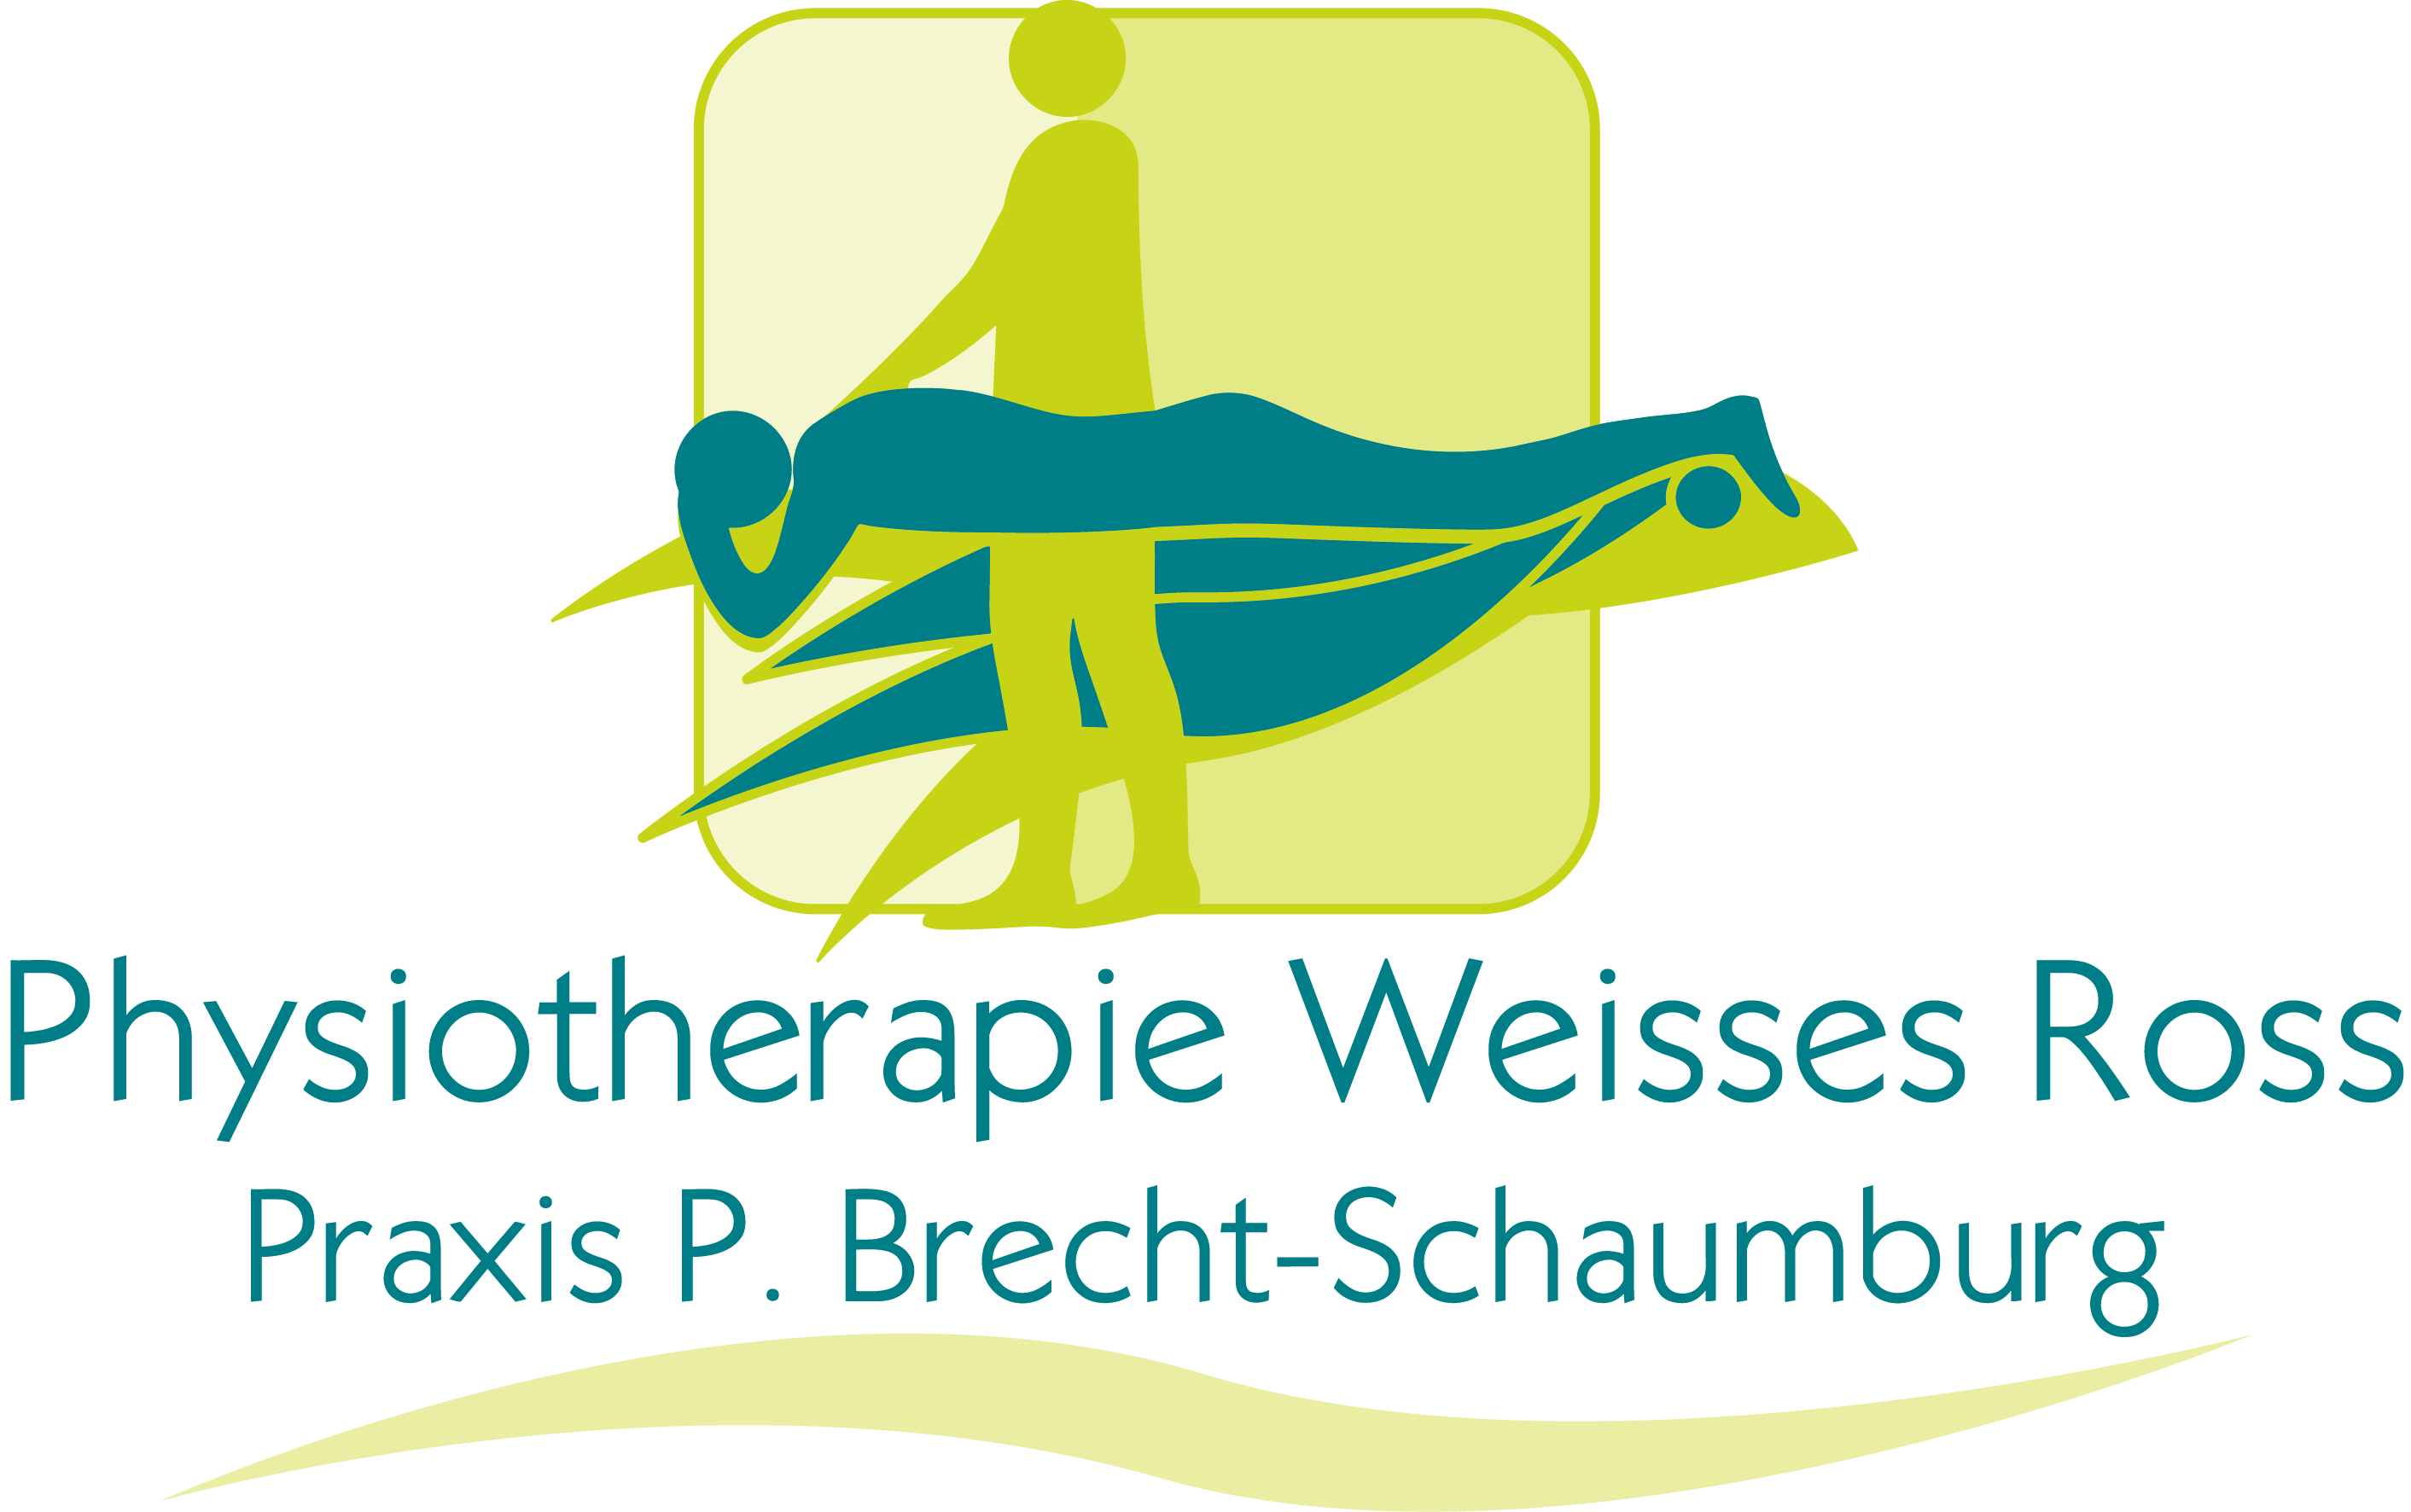 Physiotherapie Weisses Ross